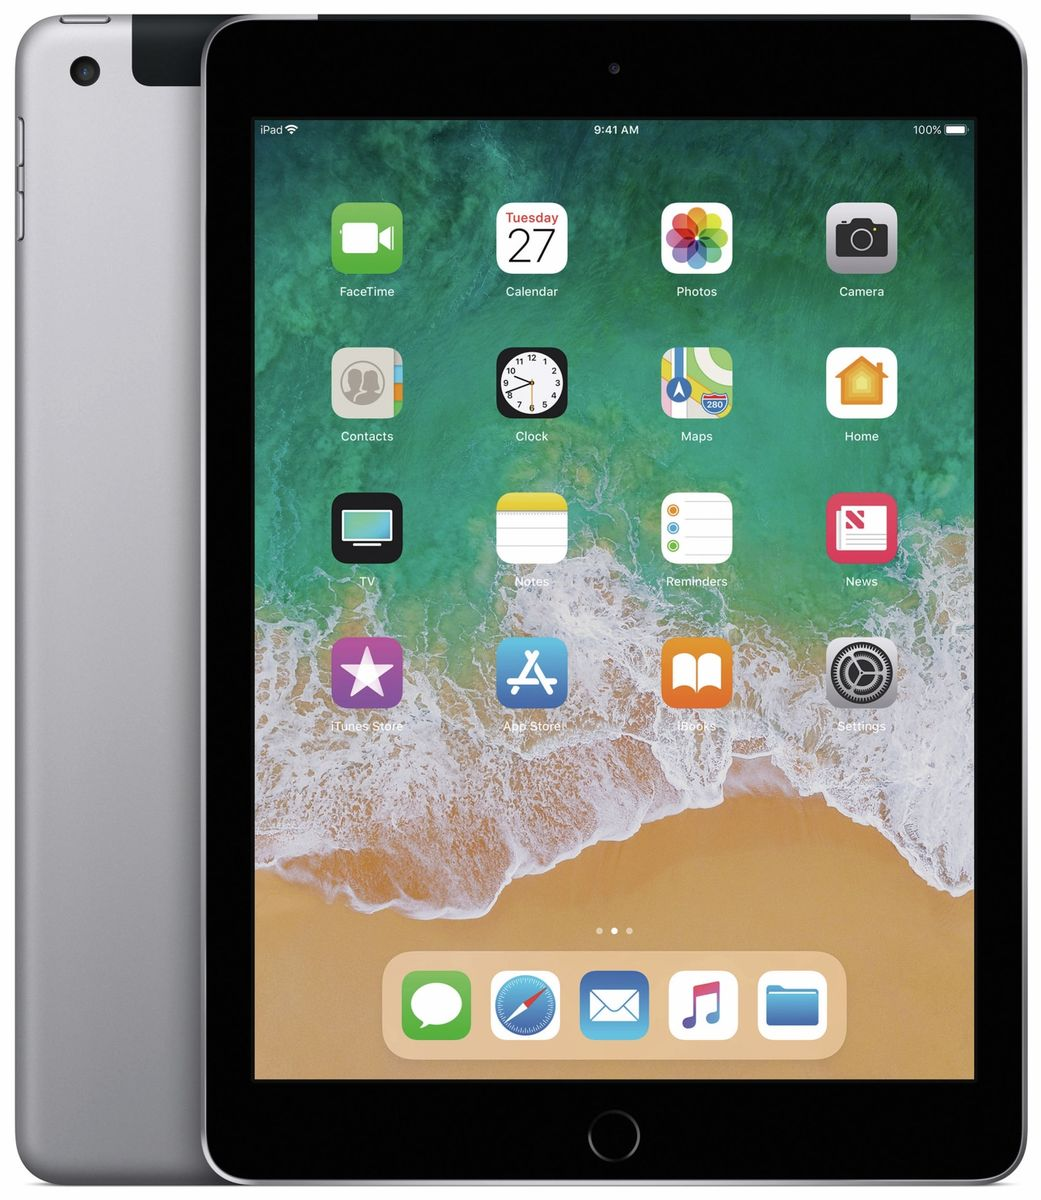 apple ipad 2018 32 gb spacegrau wifi cellular. Black Bedroom Furniture Sets. Home Design Ideas